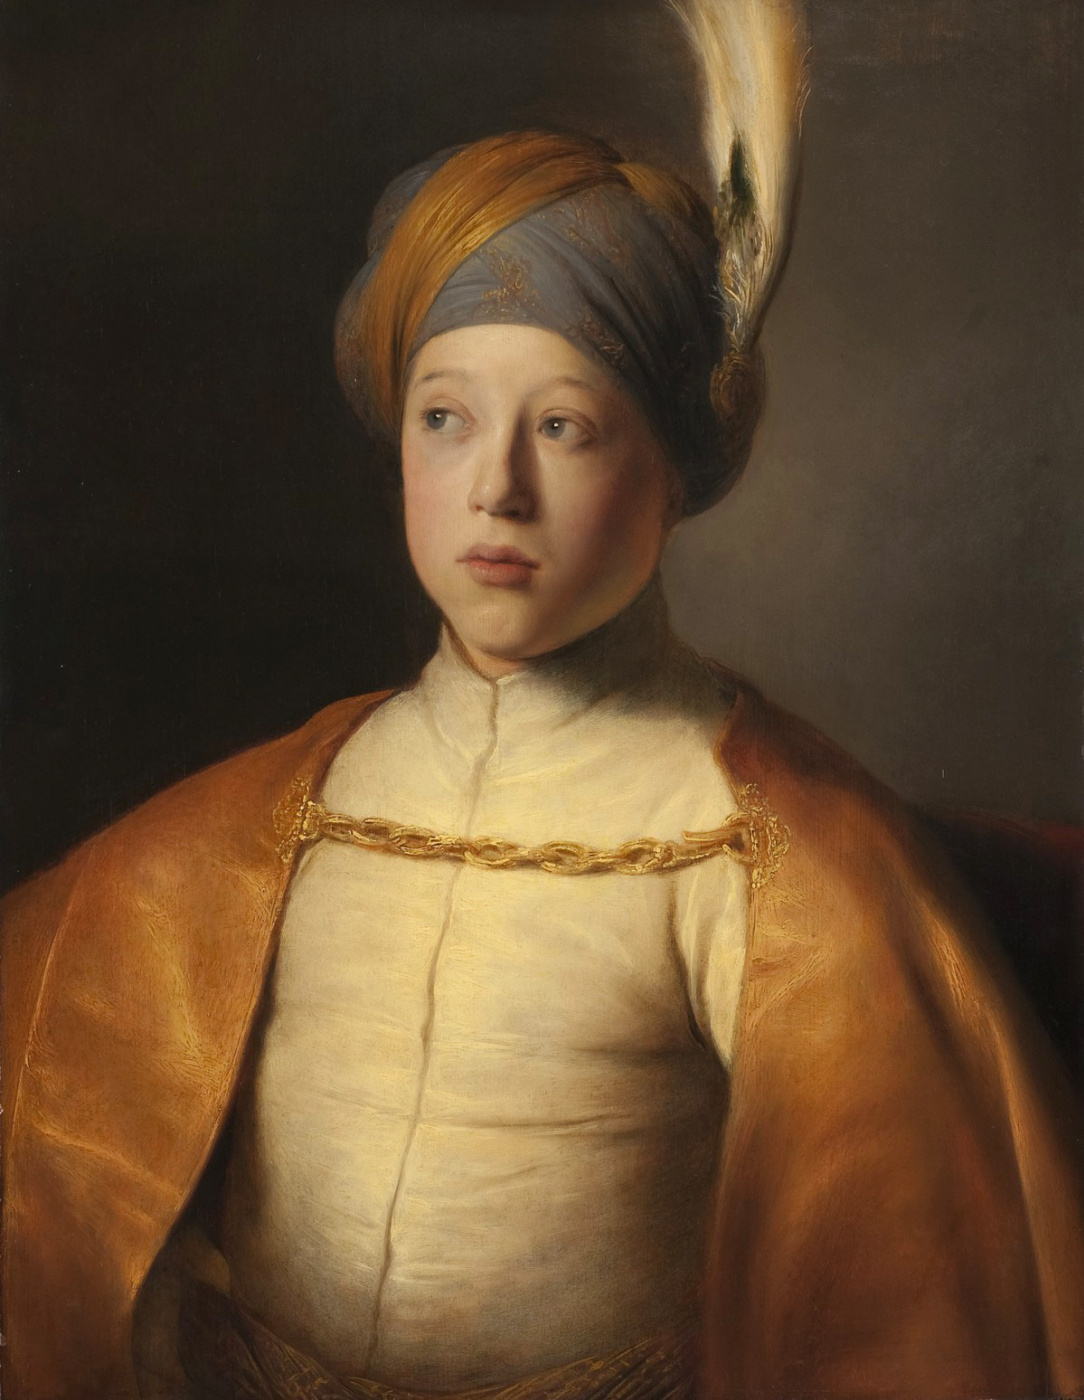 Jan Livens. The boy in the cloak and turban (Portrait of Prince Rupert of the Palatinate)